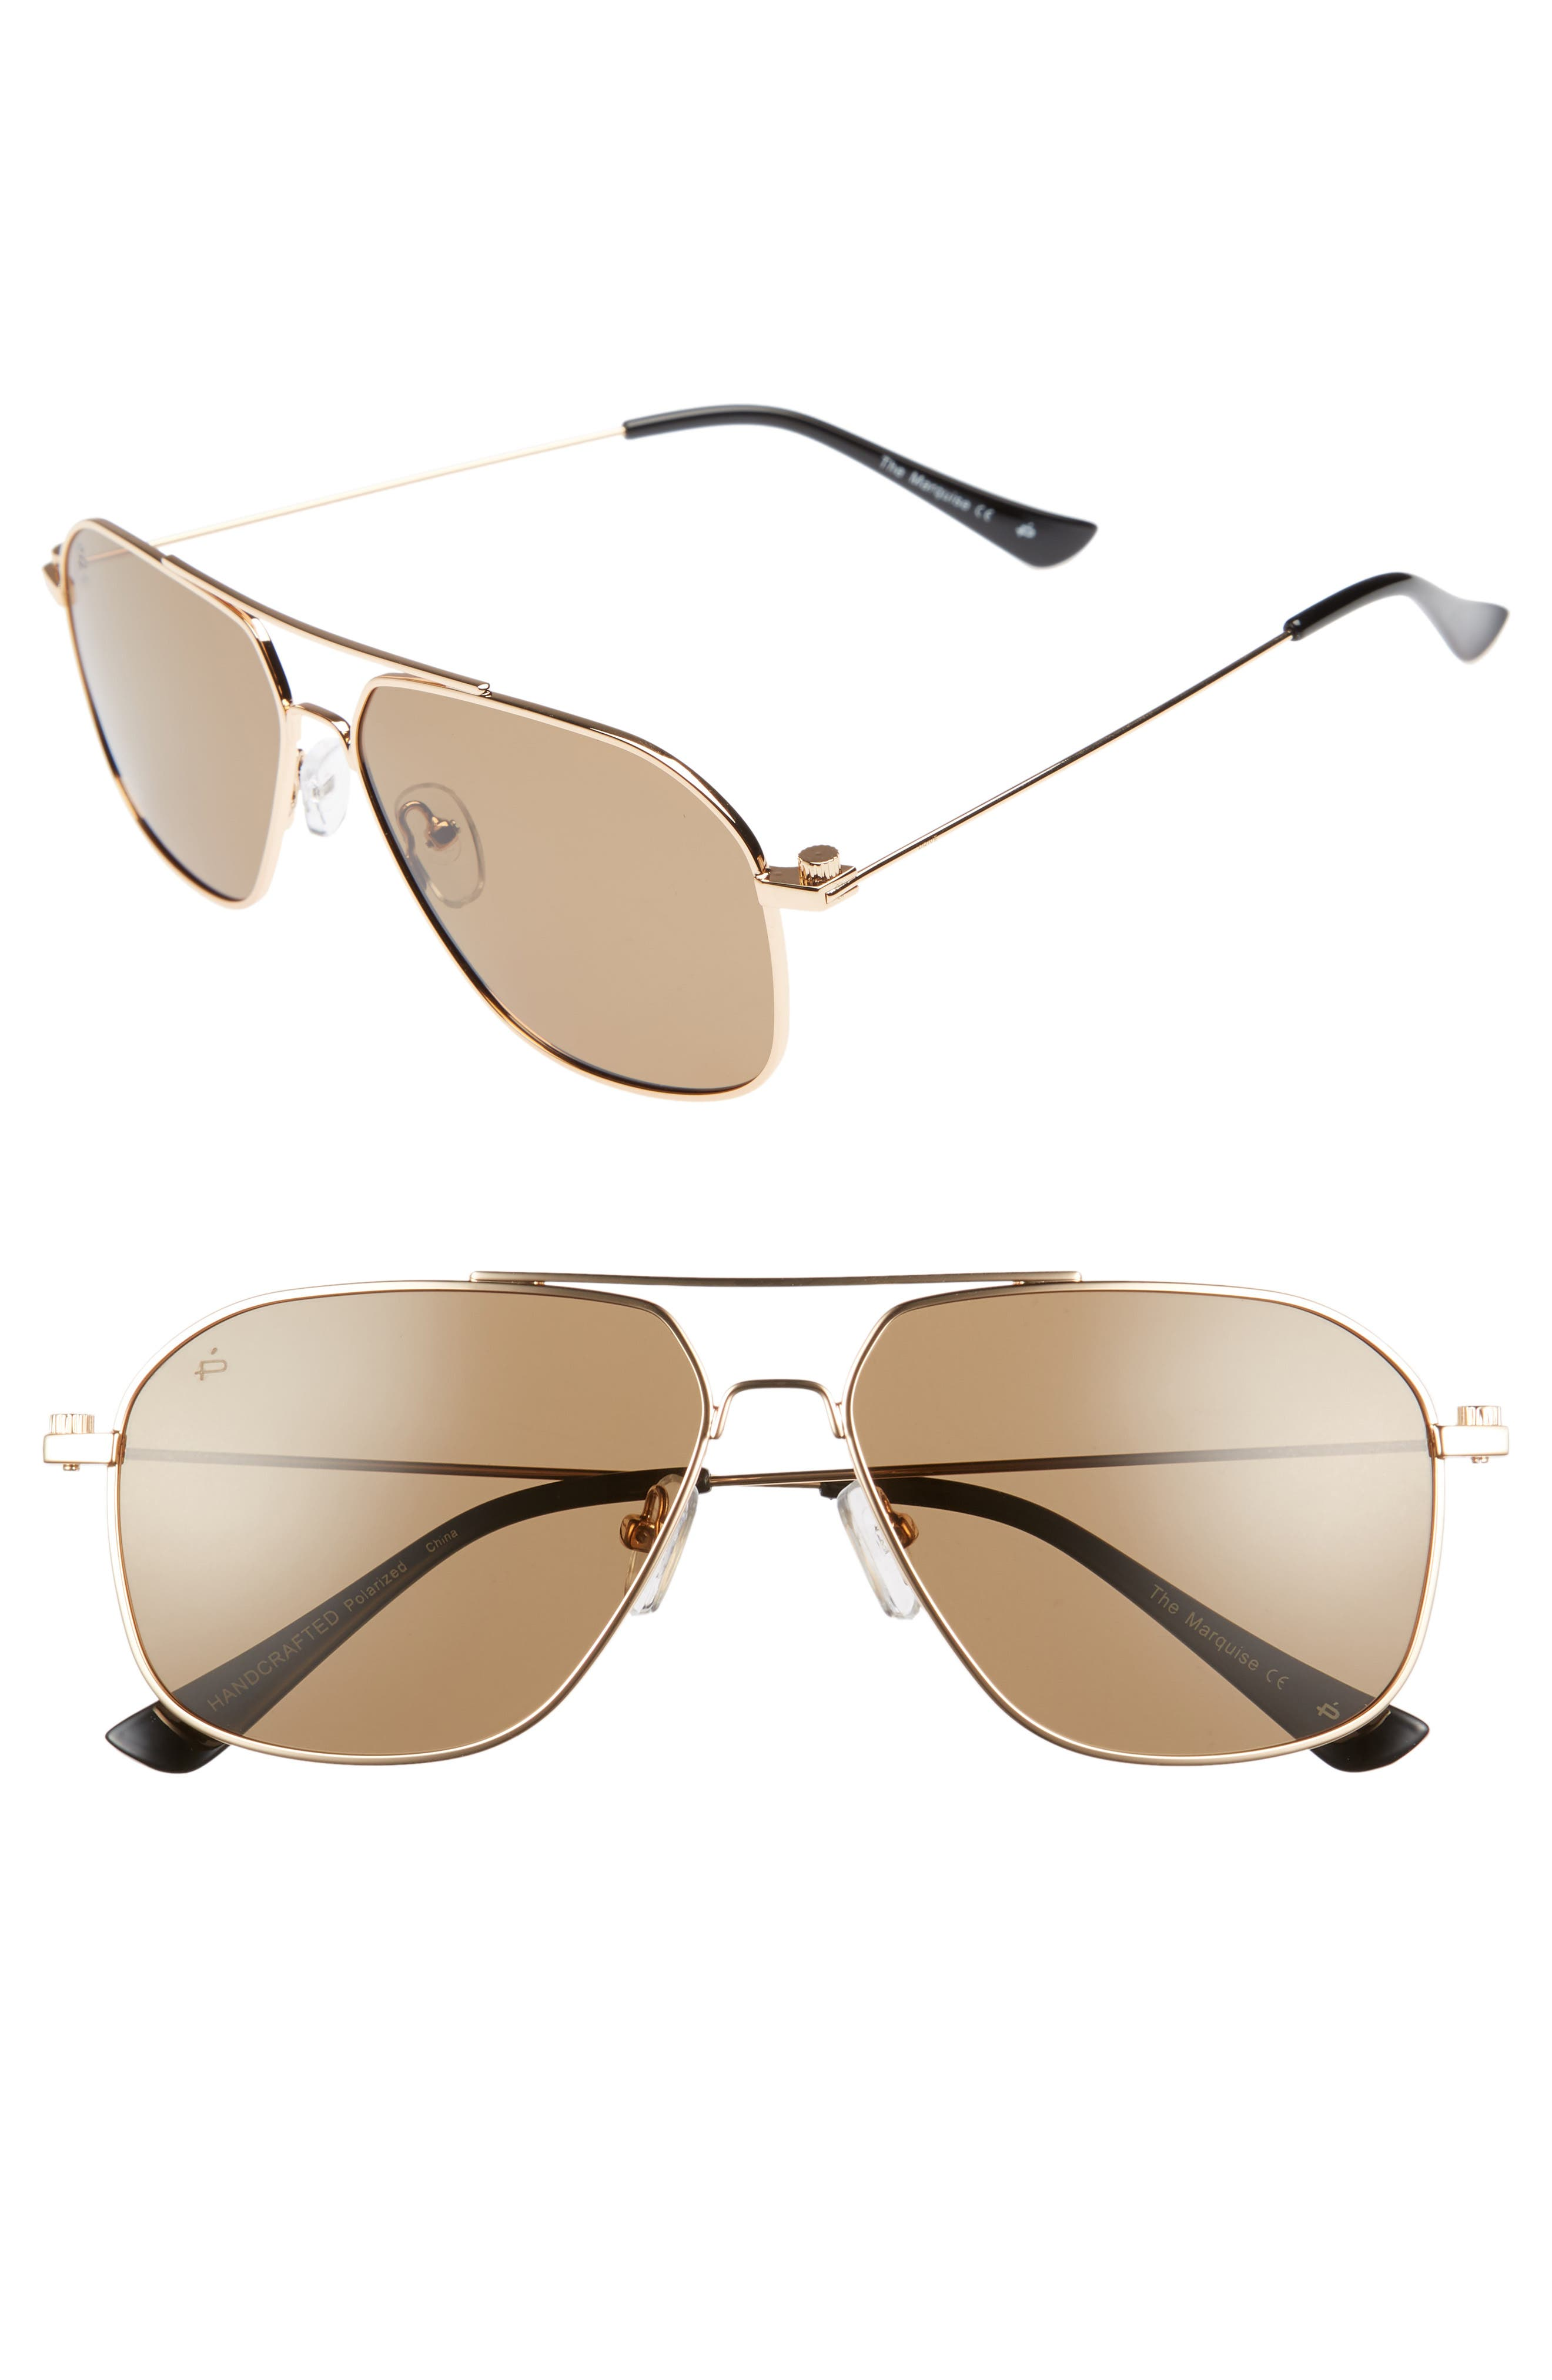 Privé Revaux The Marquise 58mm Aviator Sunglasses,                             Main thumbnail 1, color,                             Metal/ Gold